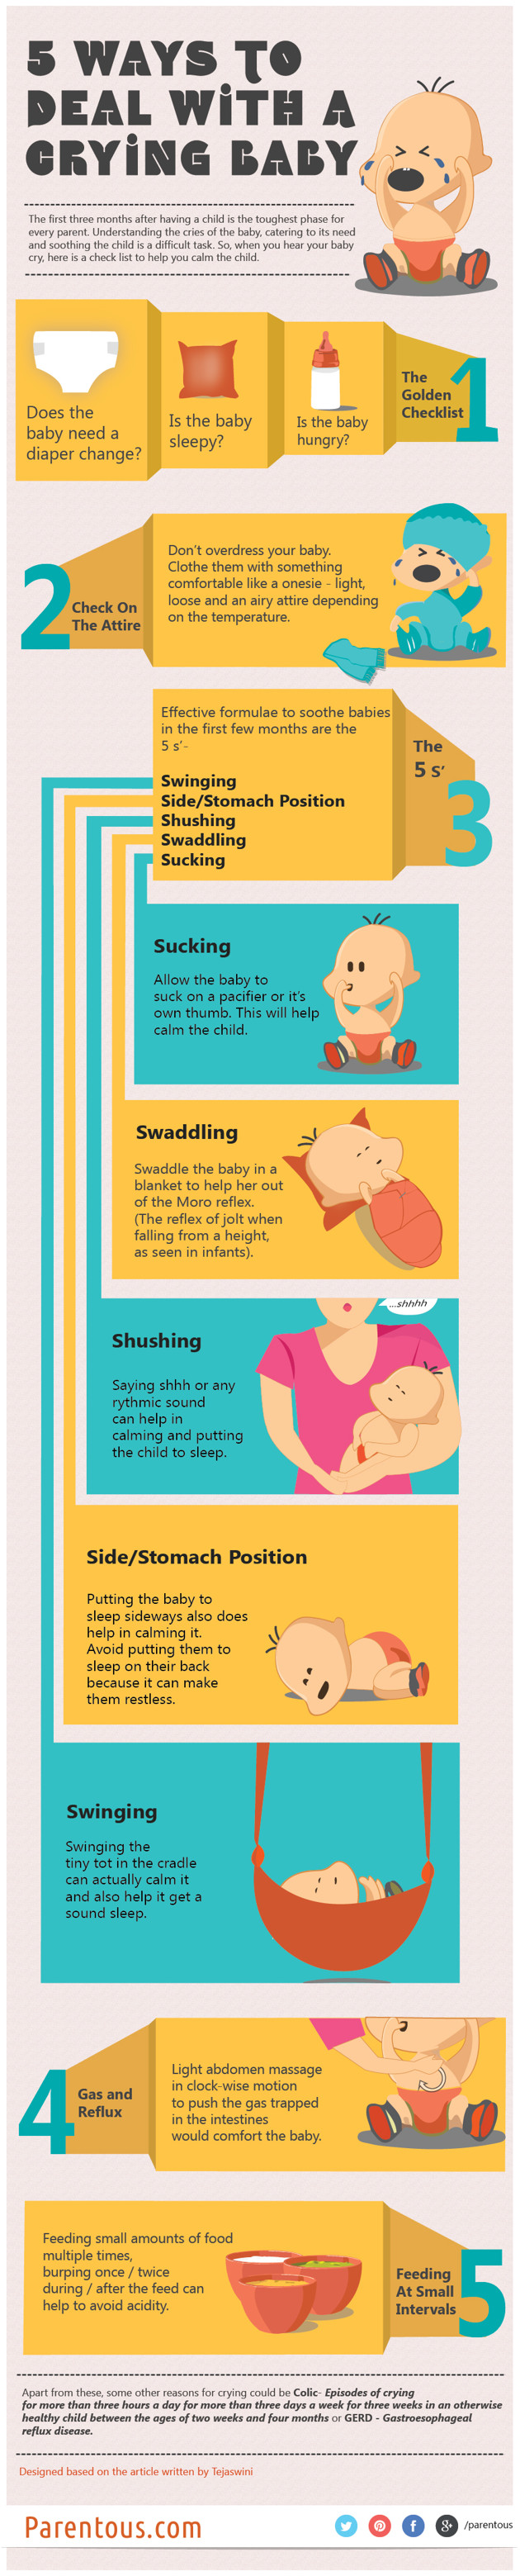 5 Ways to Deal with a Crying Baby